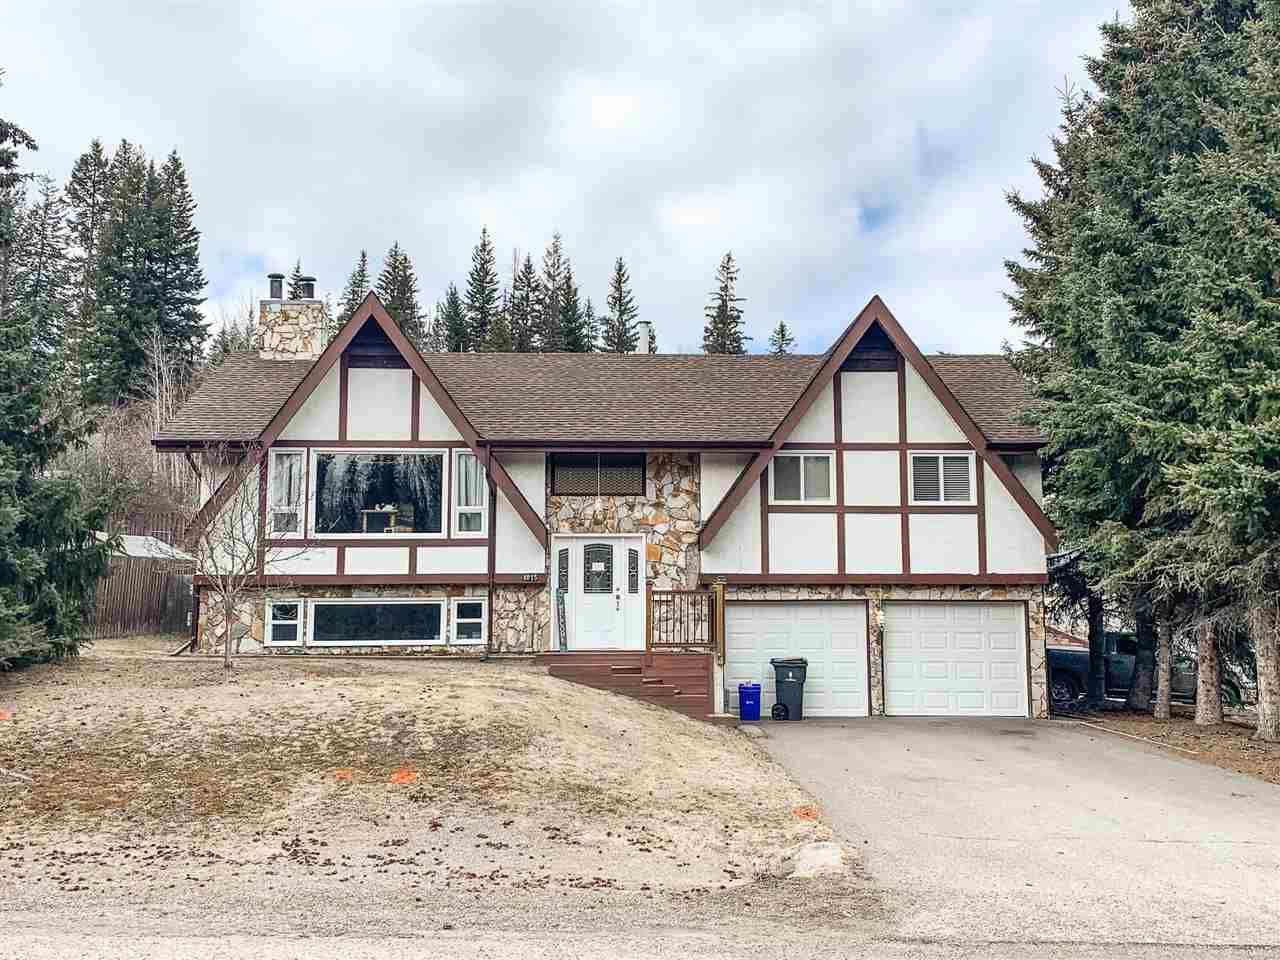 Main Photo: 4015 BRENTWOOD Drive in Prince George: Mount Alder House for sale (PG City North (Zone 73))  : MLS®# R2549585